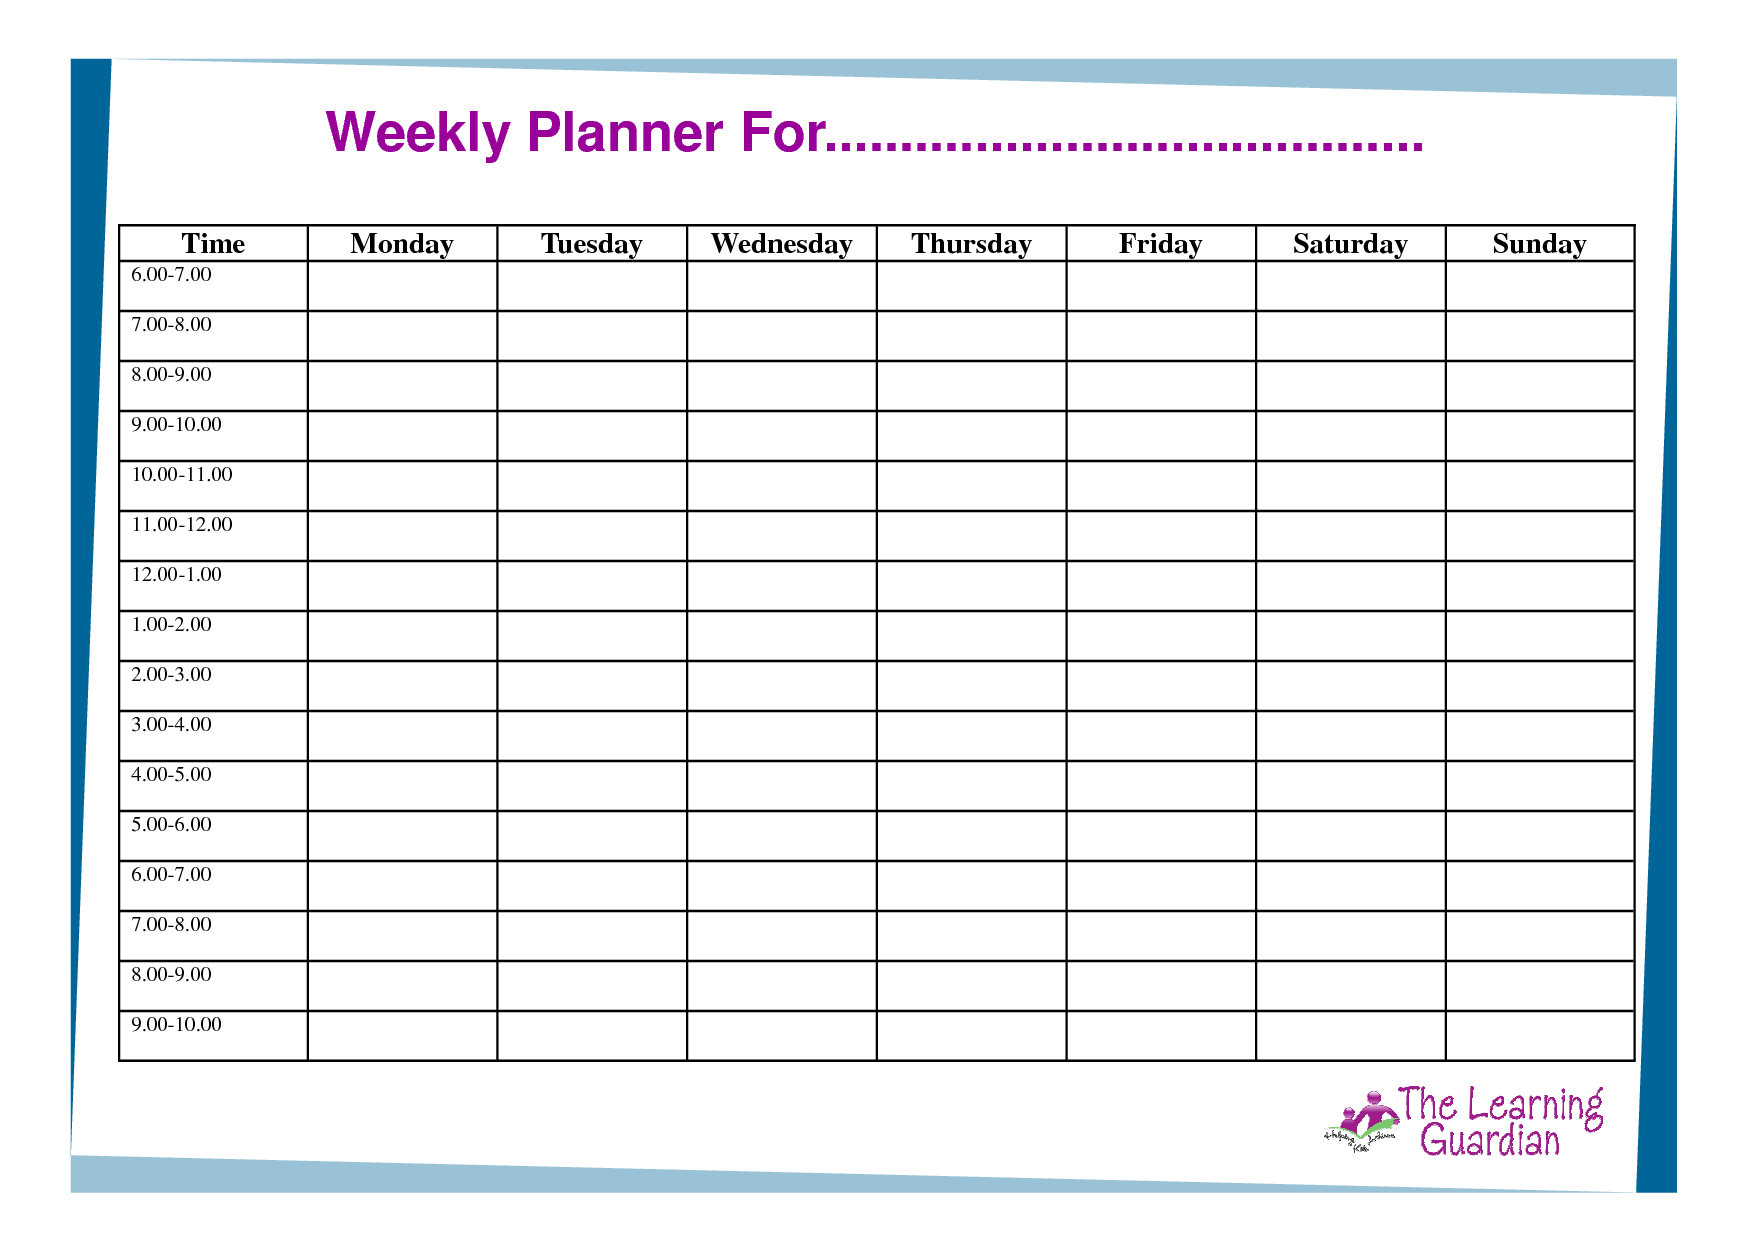 Free Printable Weekly Calendar Templates | Weekly Planner within Monday To Friday Planner Template